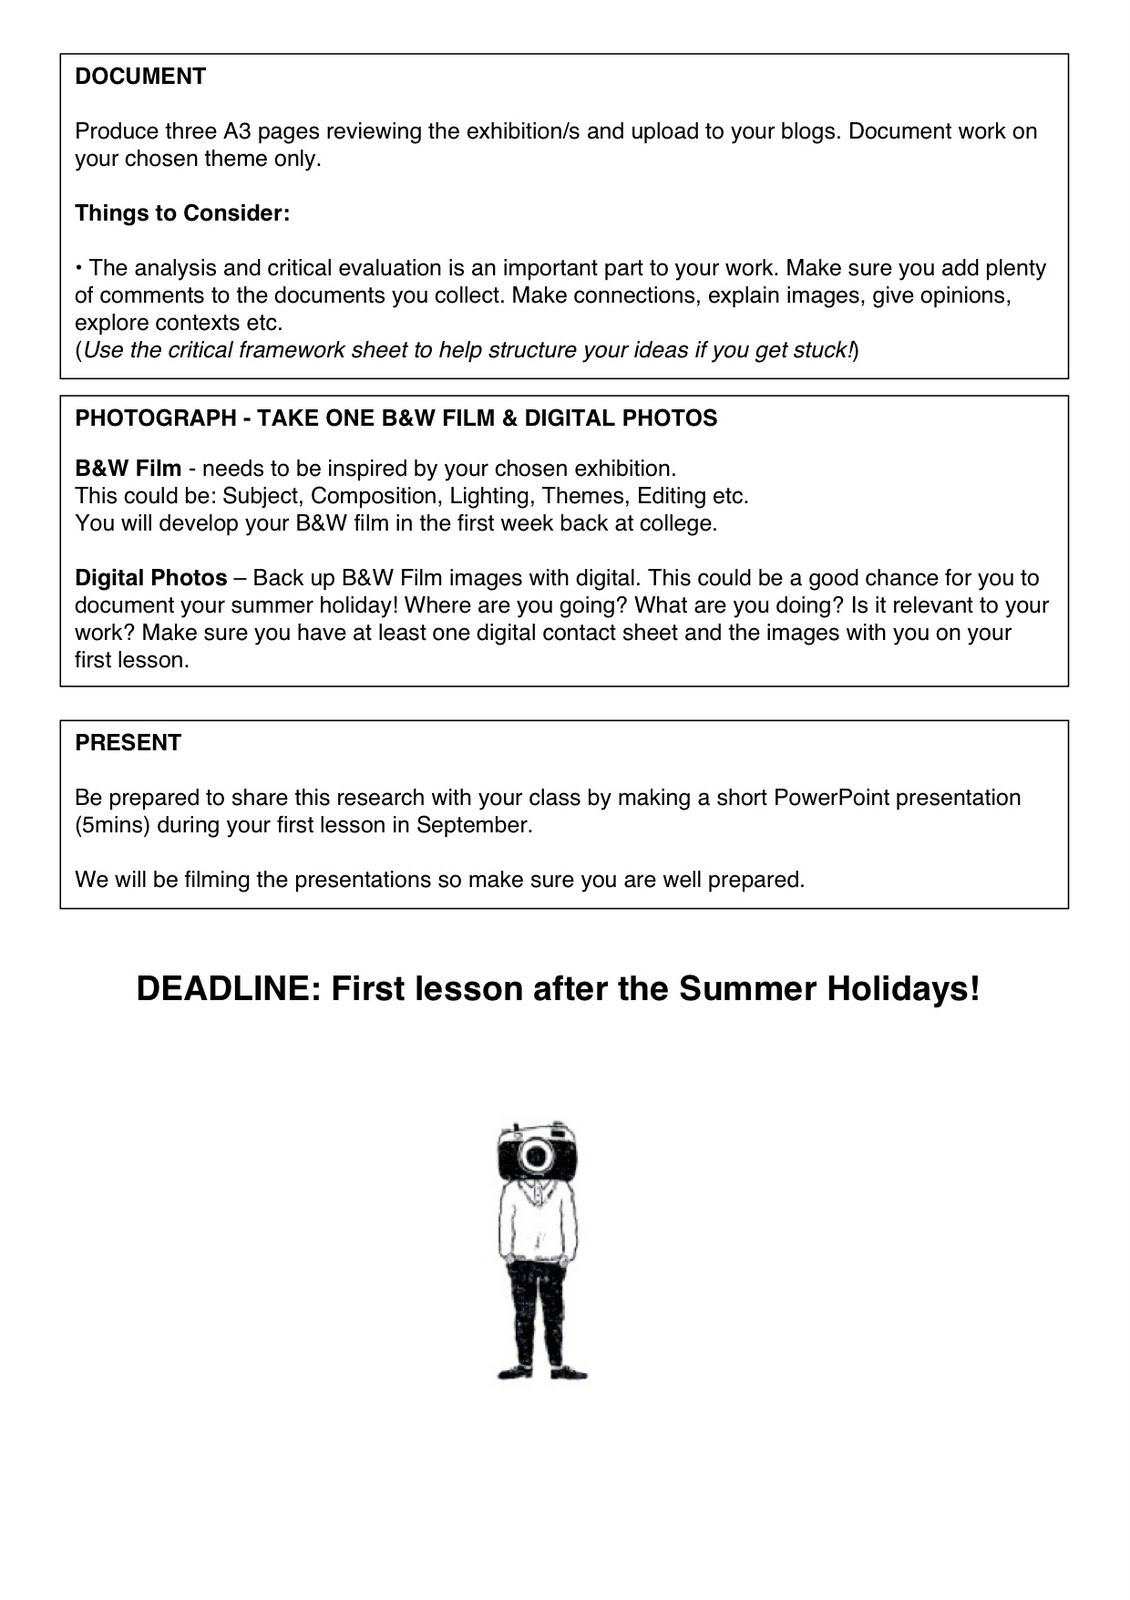 coulsdon college visual arts  tuesday 28 2011